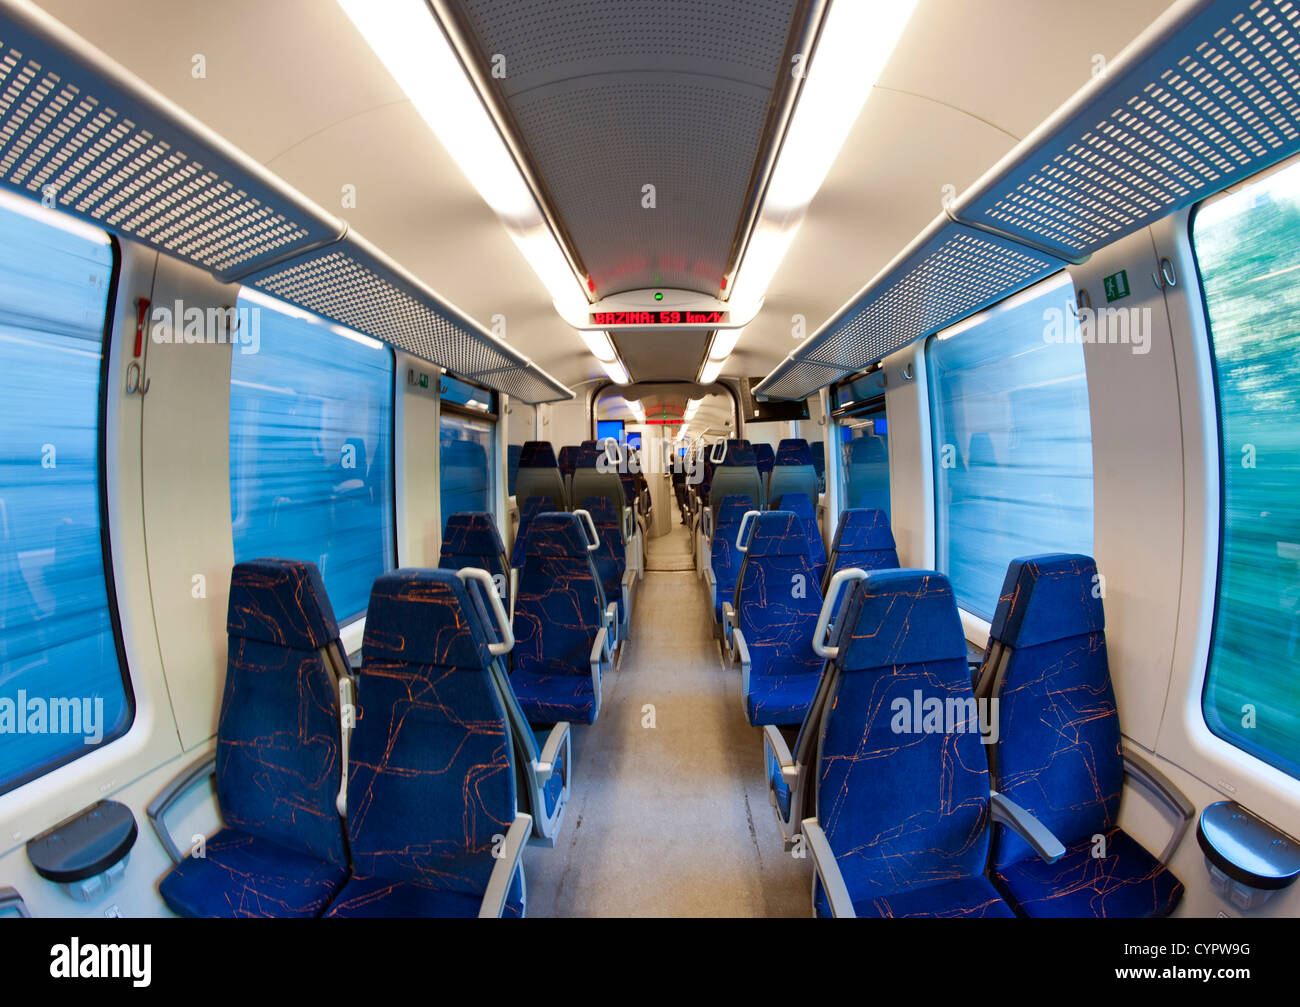 Interior of the brand new (as of 2012) train running between Sarajevo and Mostar. - Stock Image